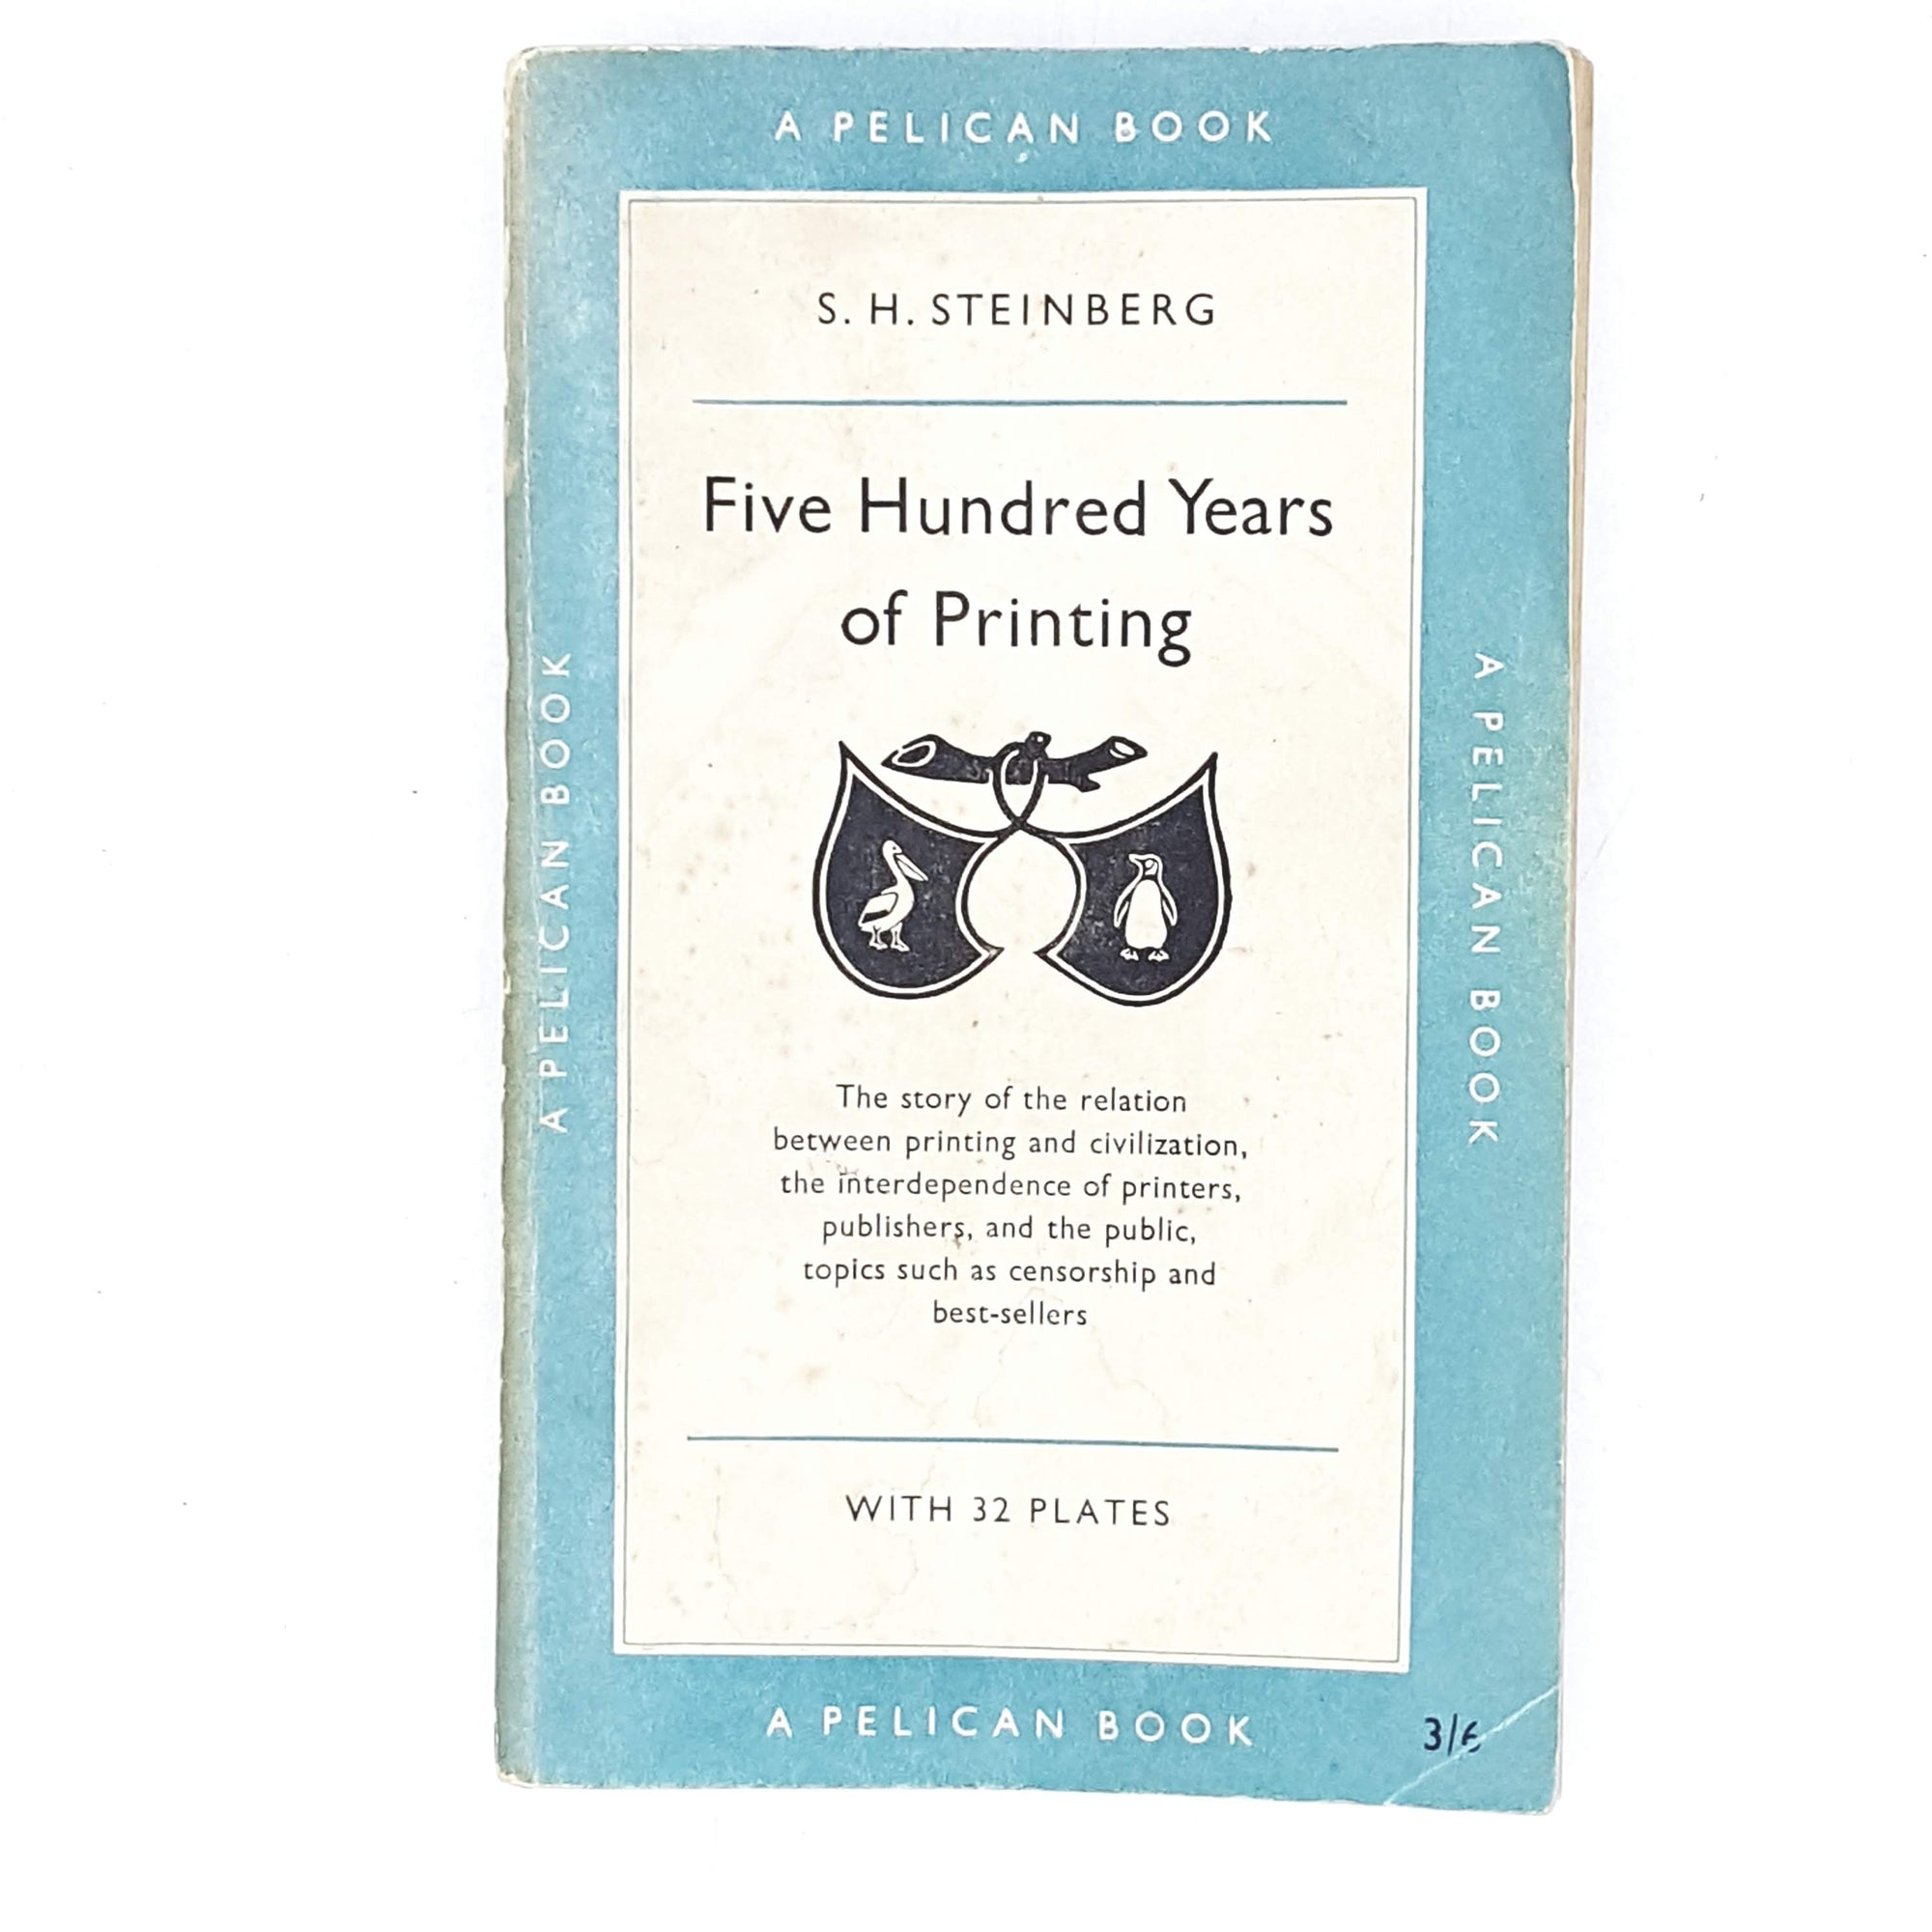 Vintage Pelican Five Hundred Years of Printing by S. H. Steinberg 1955